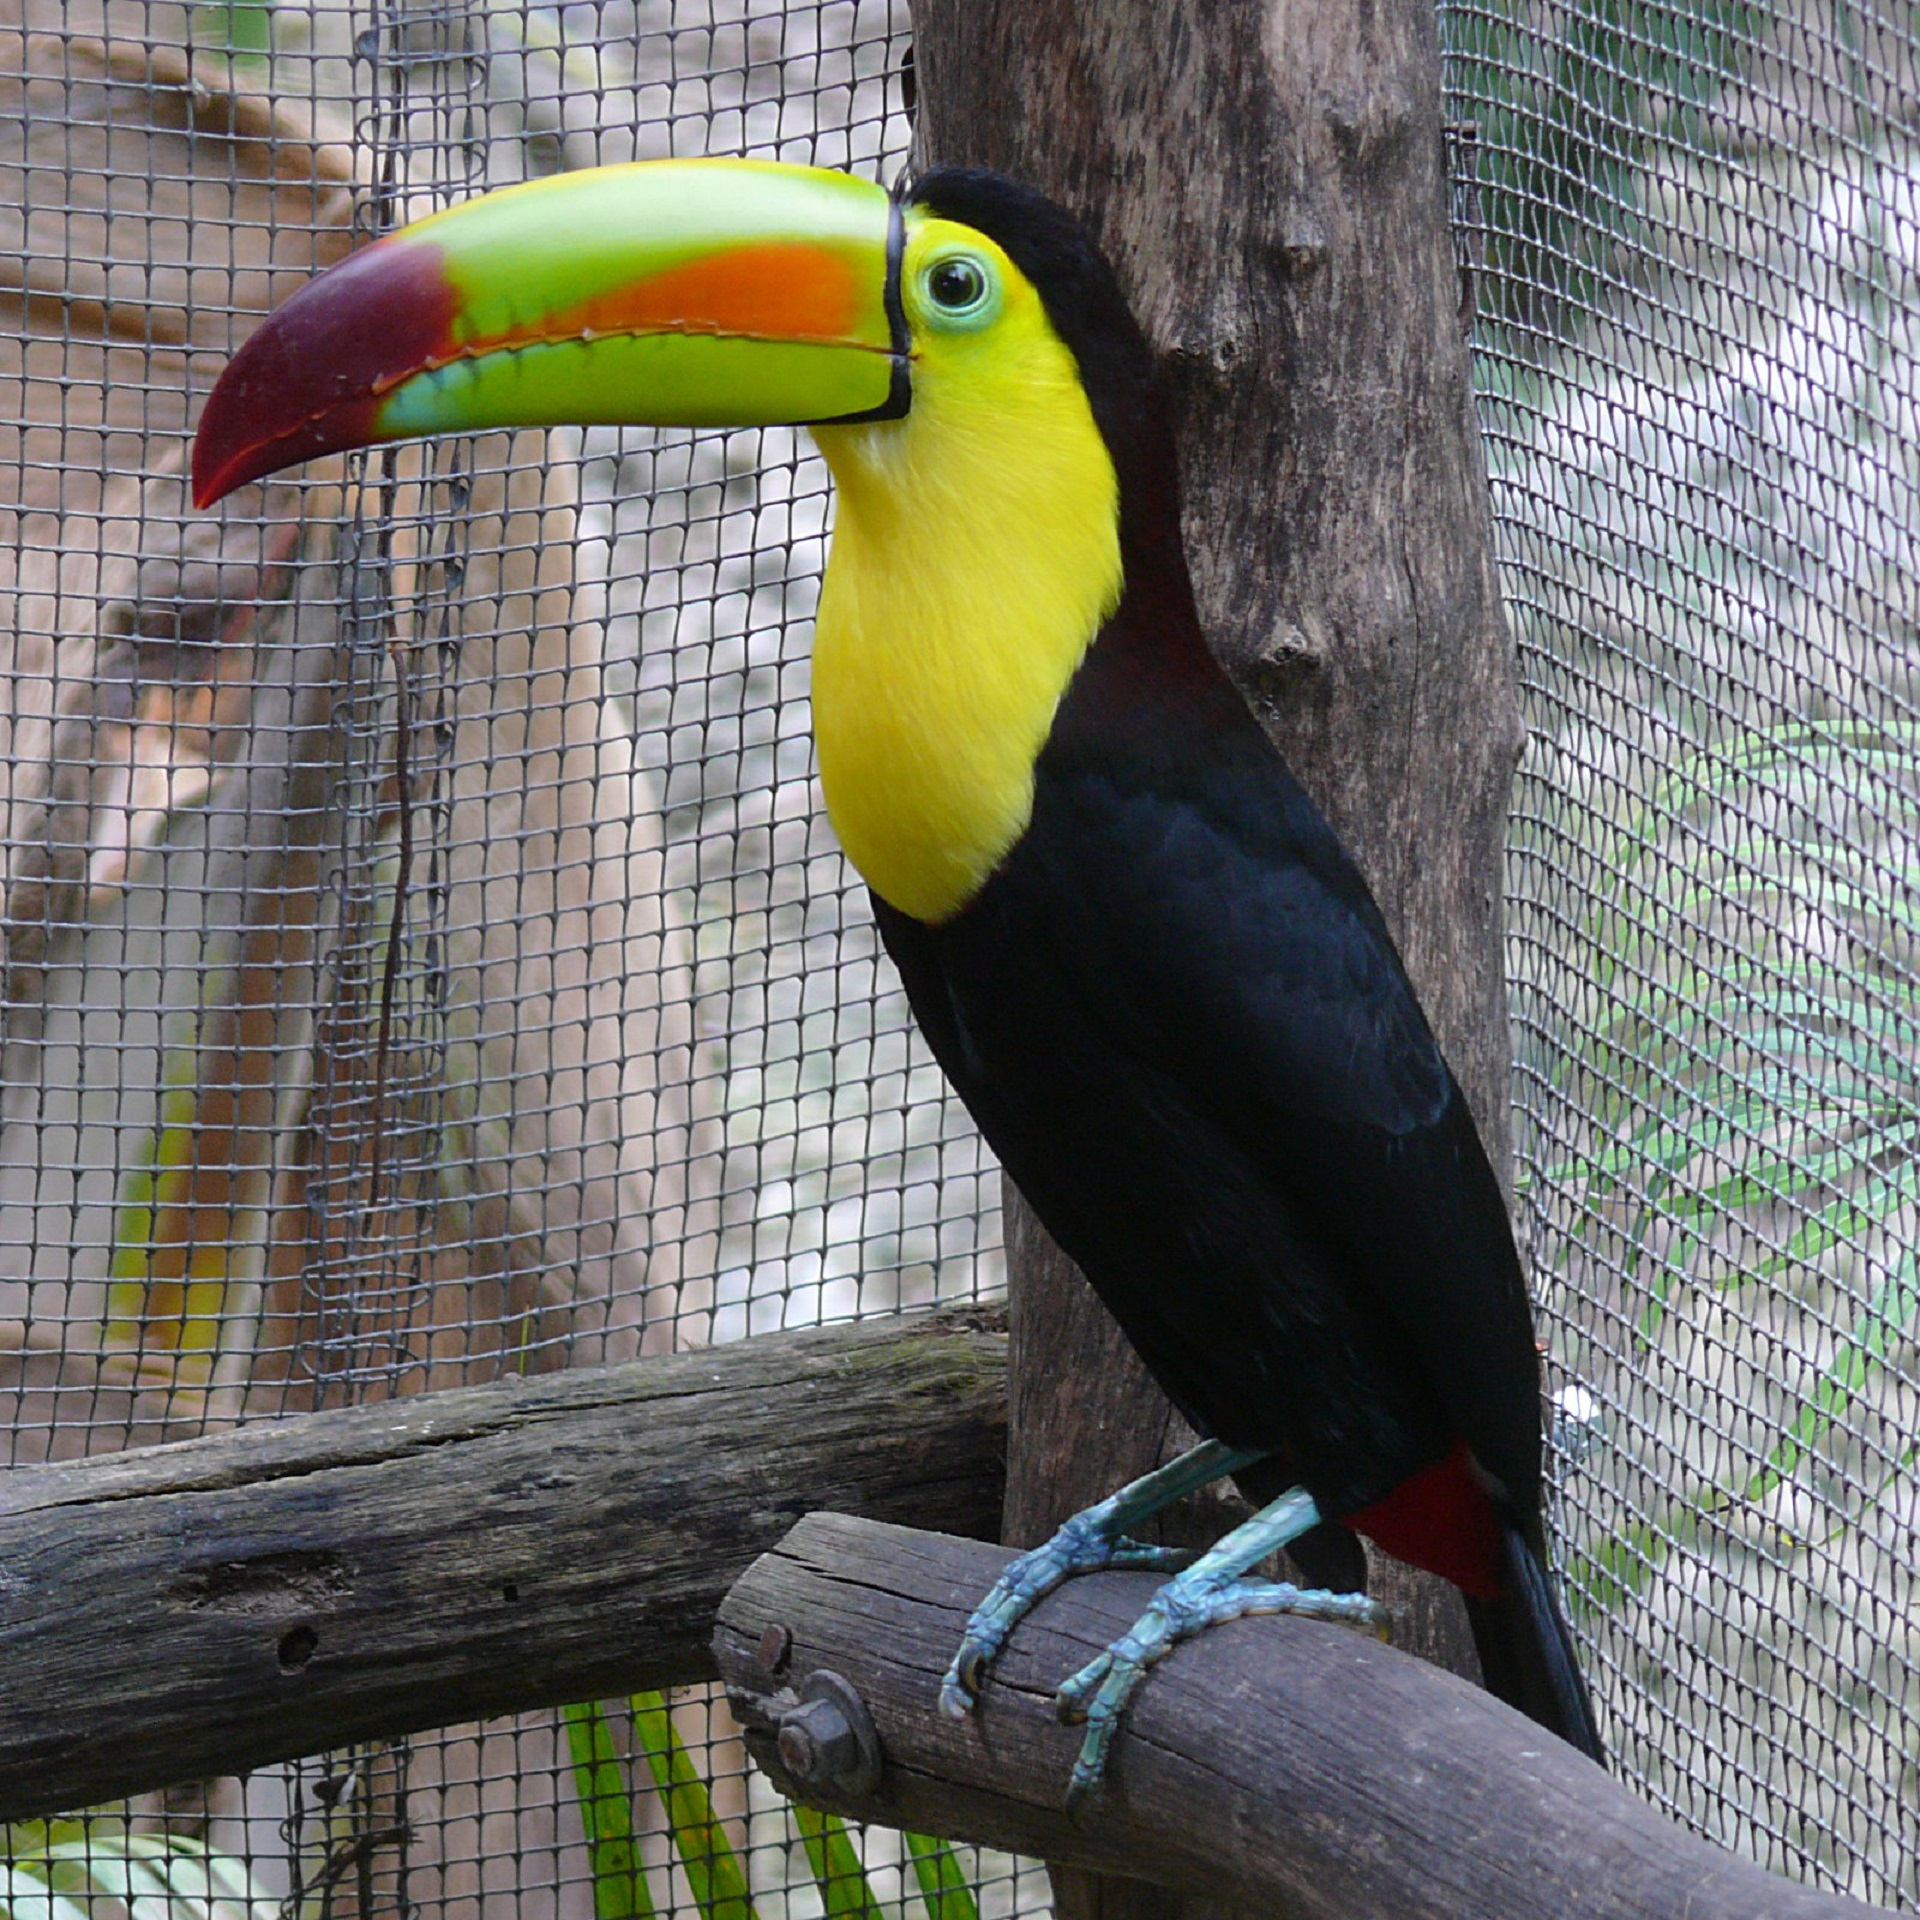 Toucan in the zoo photo